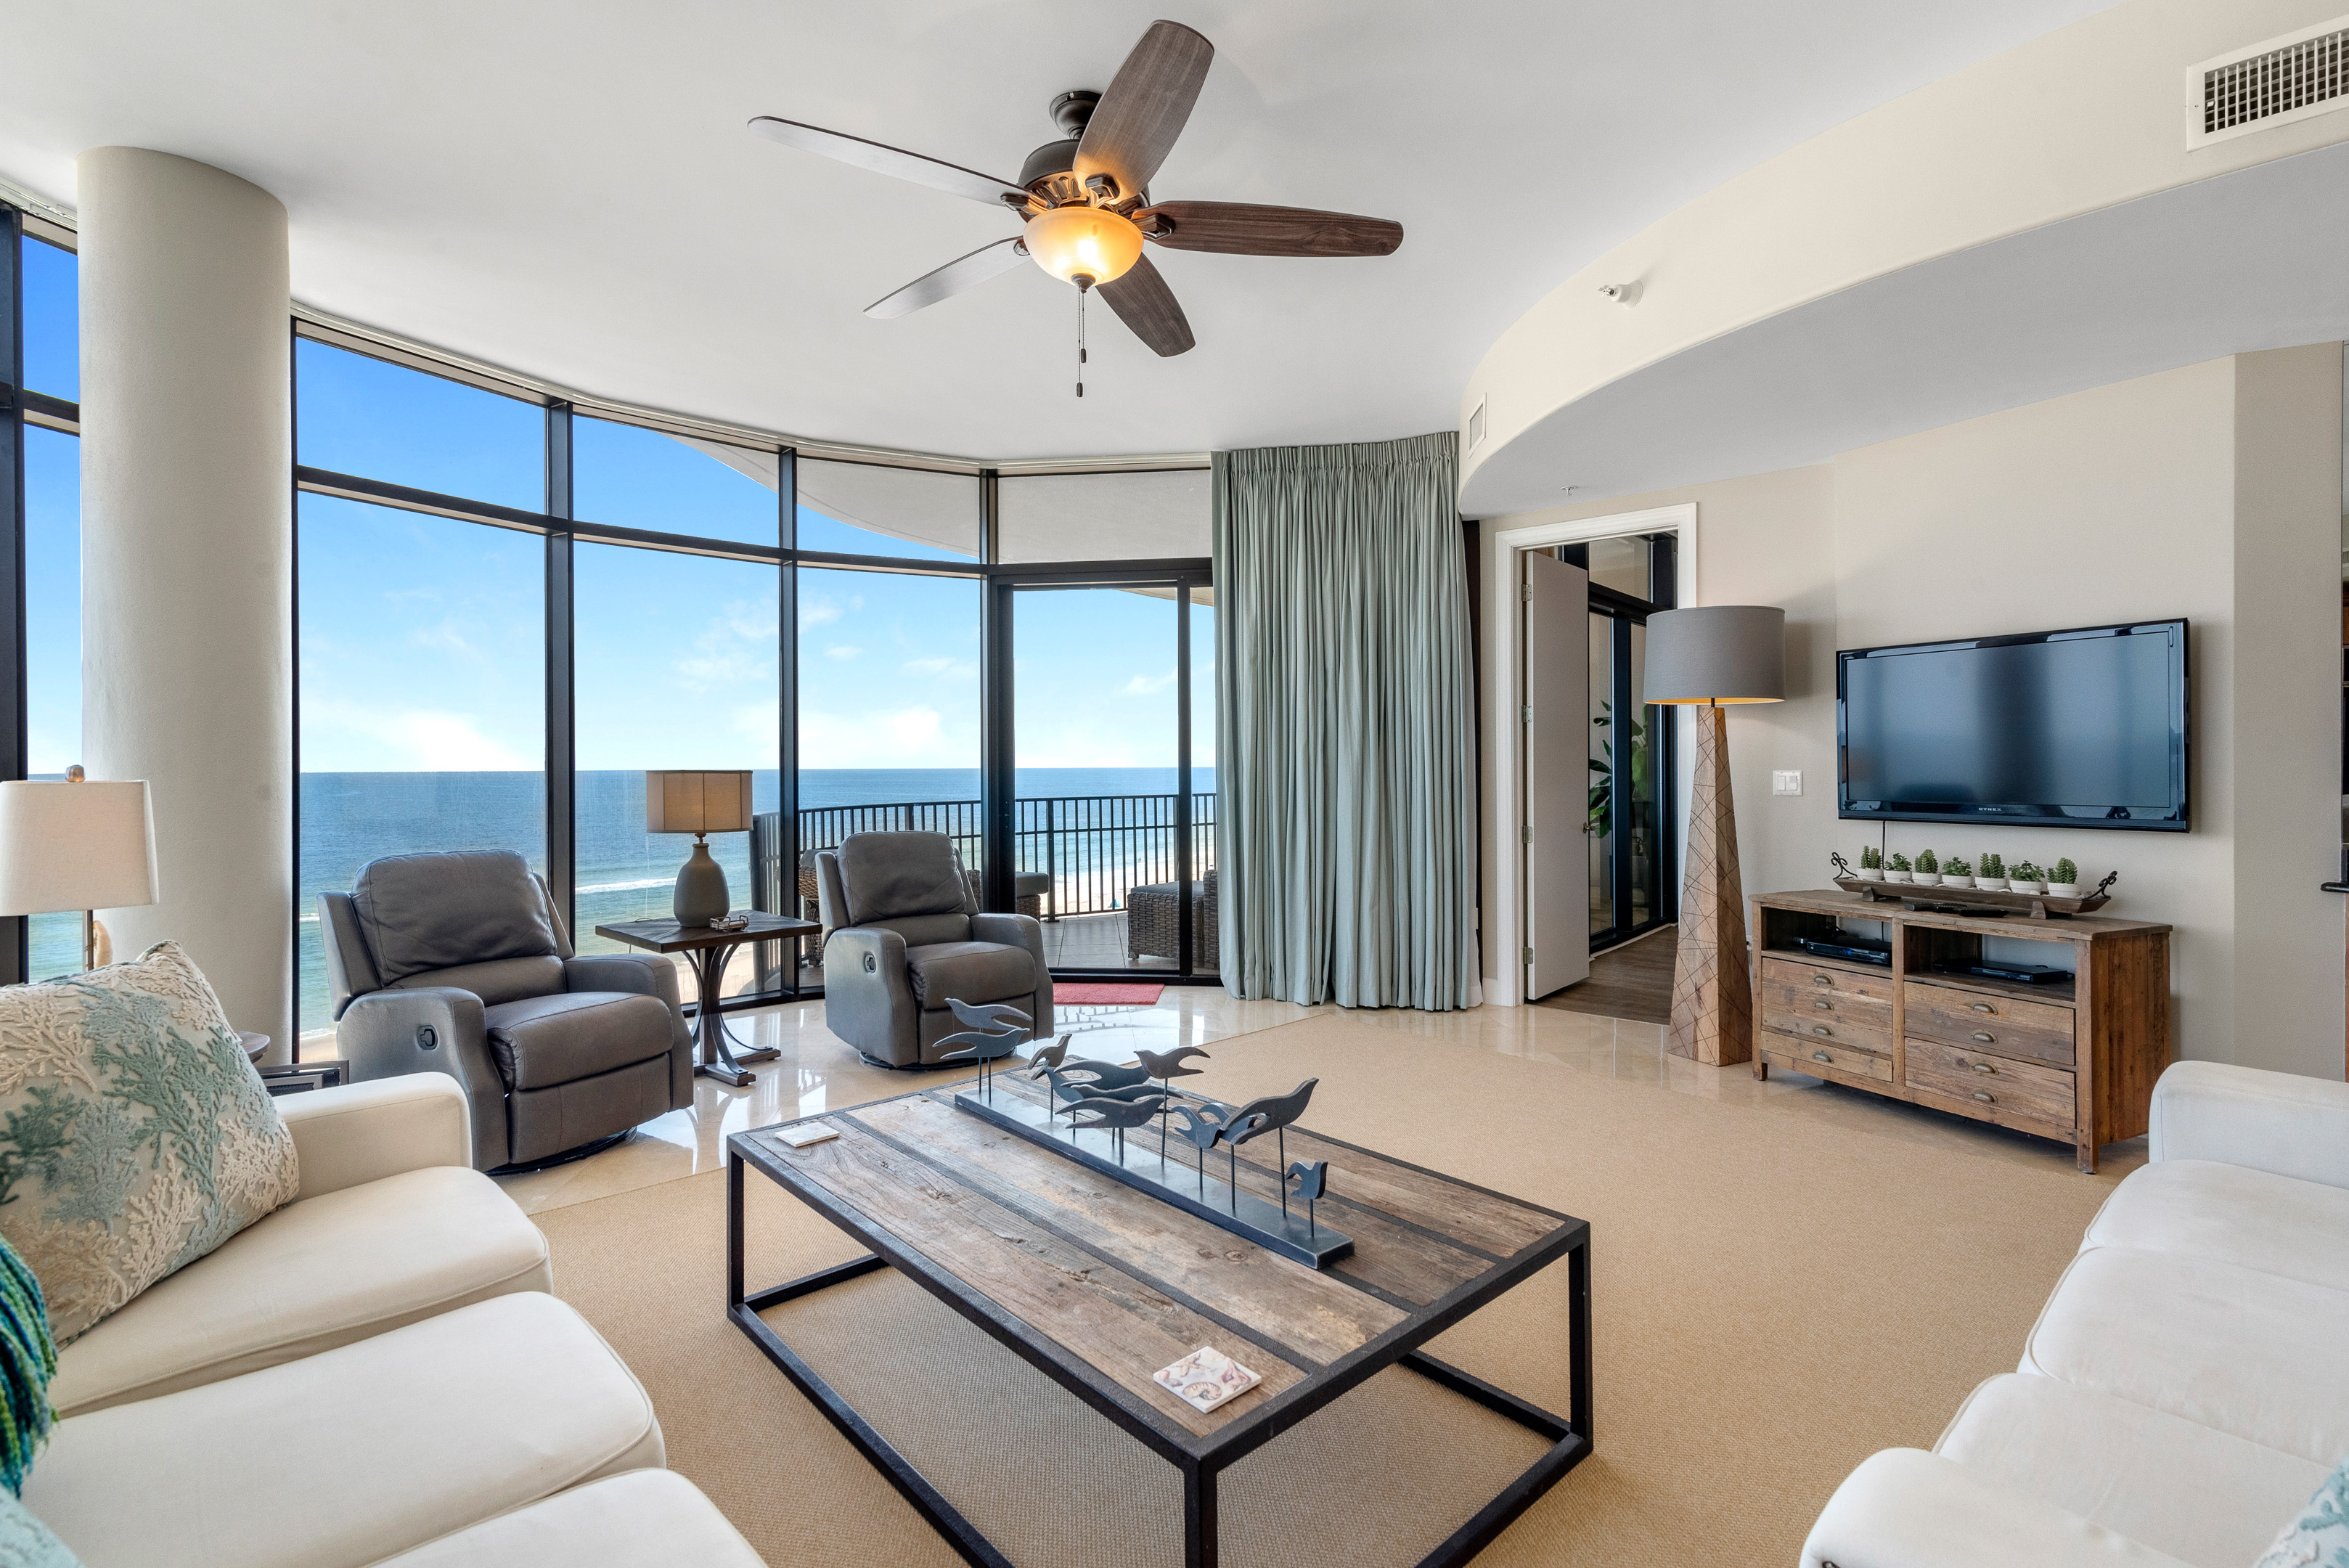 Amazing ocean views in this 4 bedroom condo rental in Perdido Key, FL